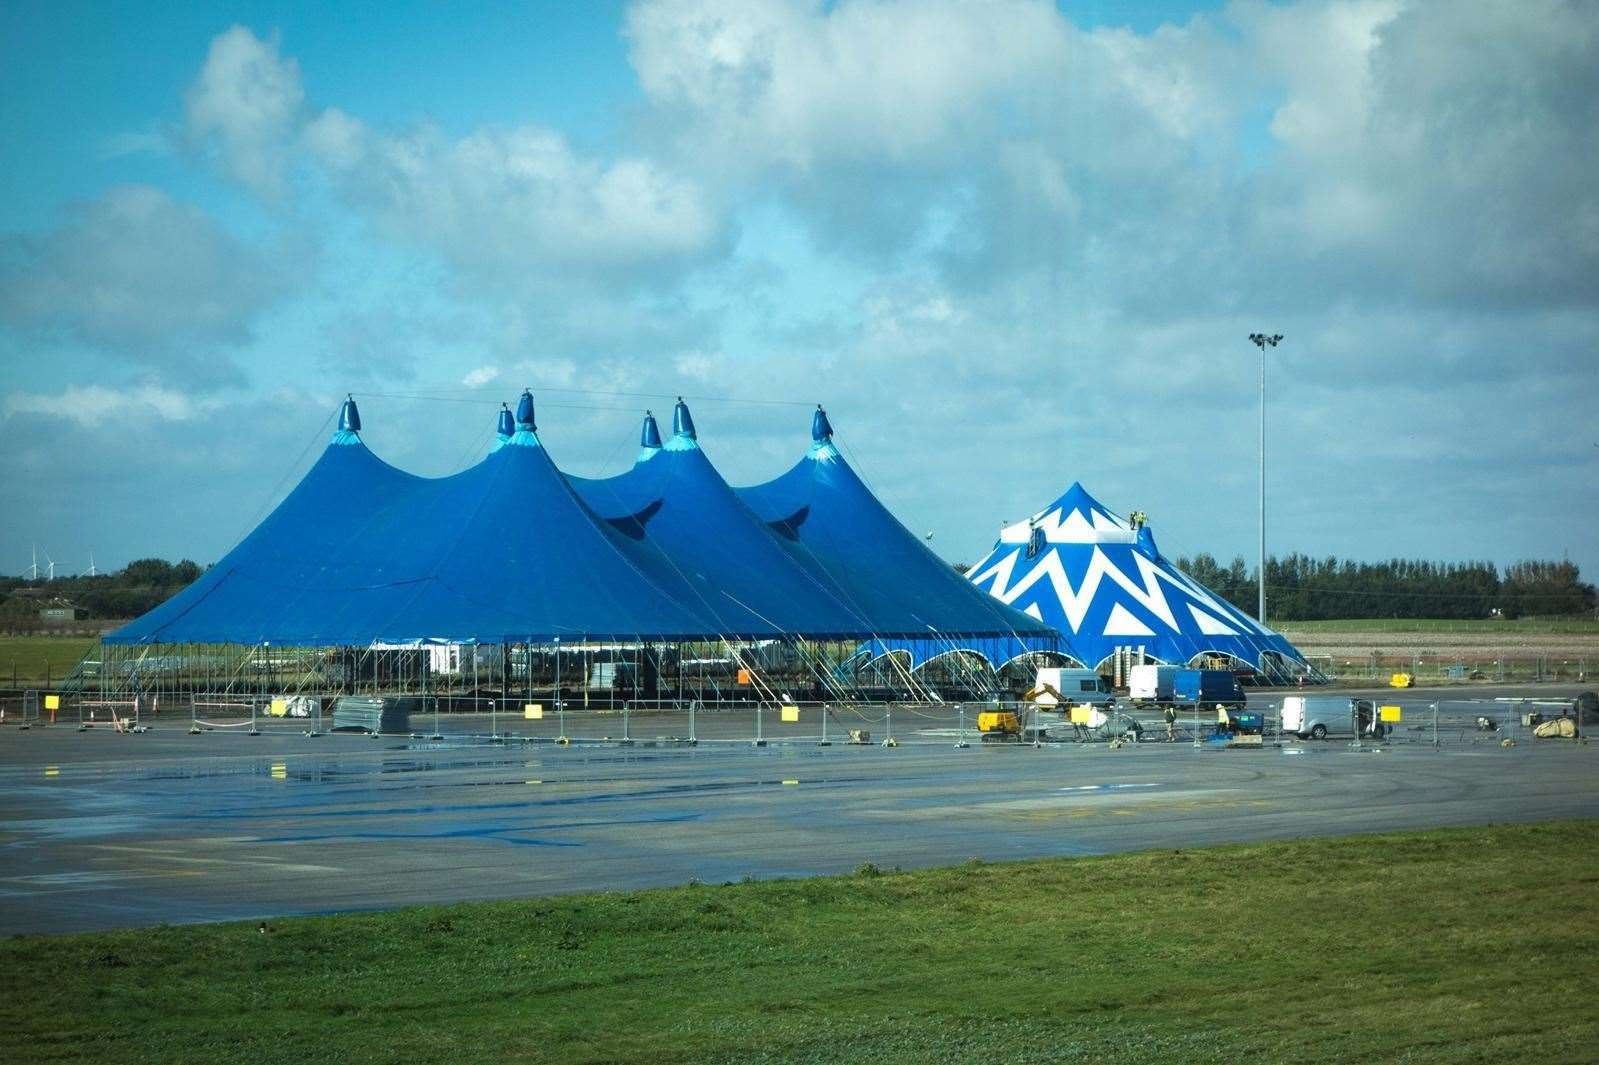 Two tents are already up at the airport